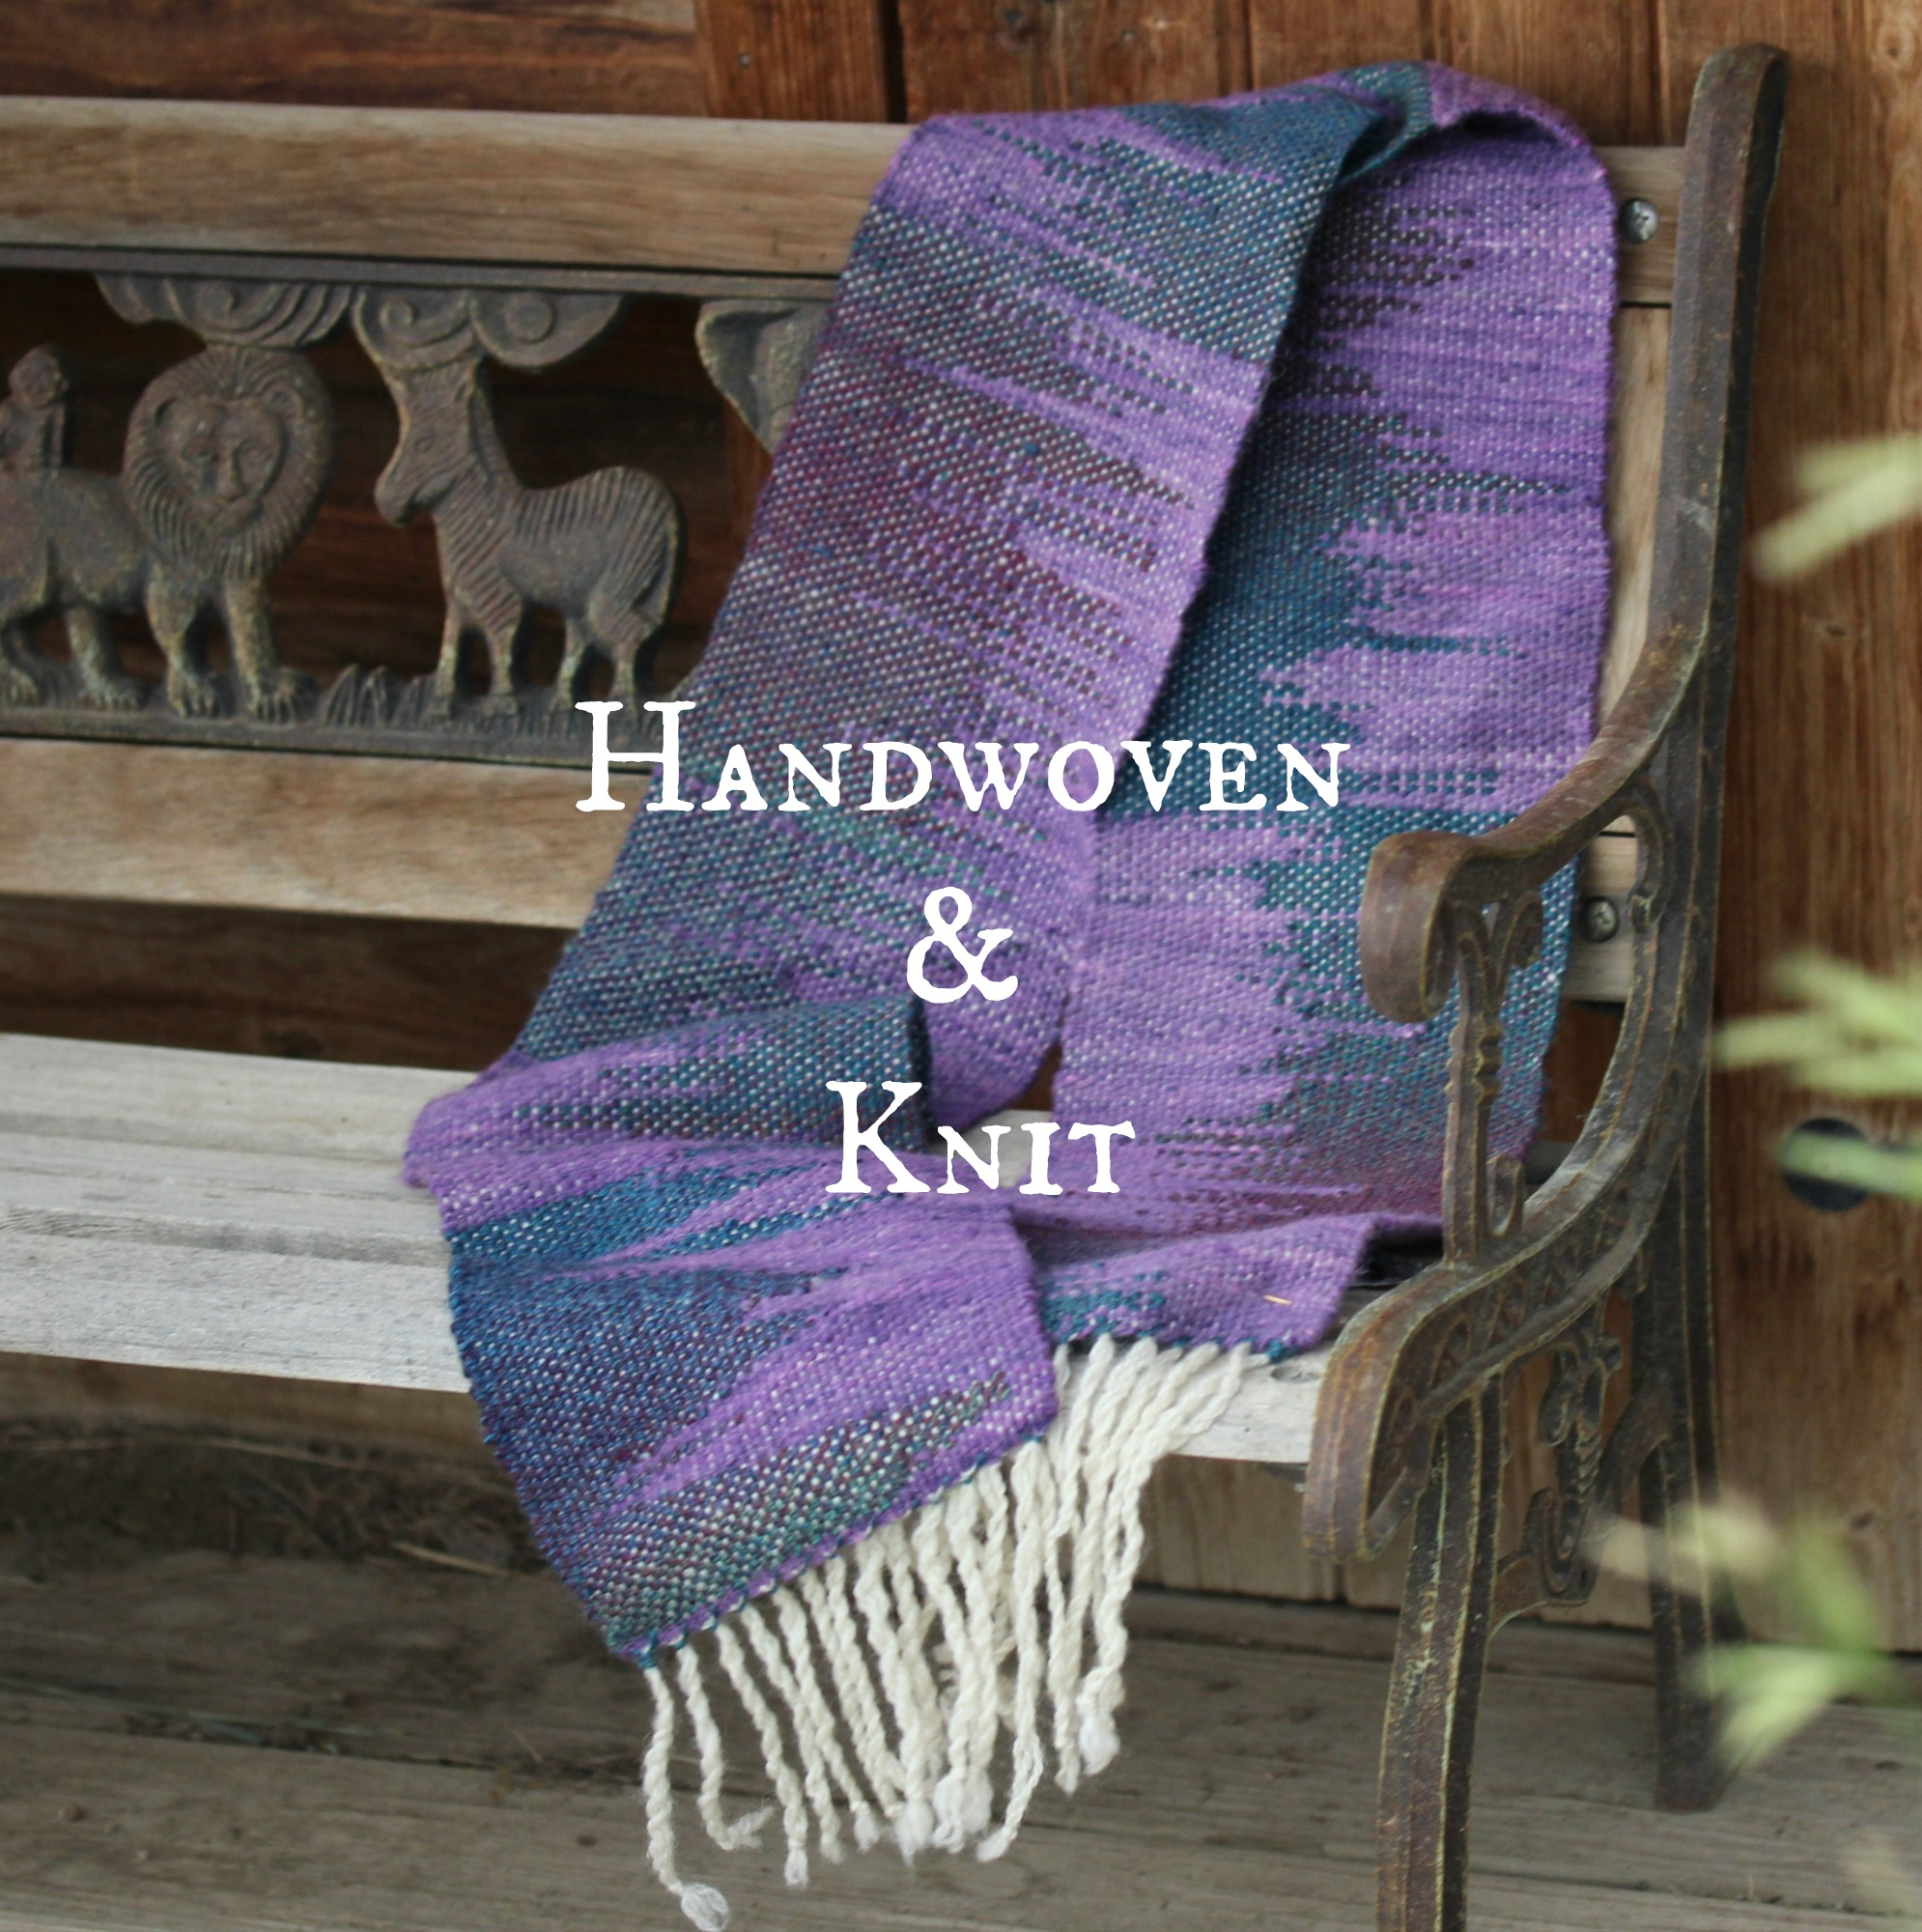 Handwoven & Knit.jpg